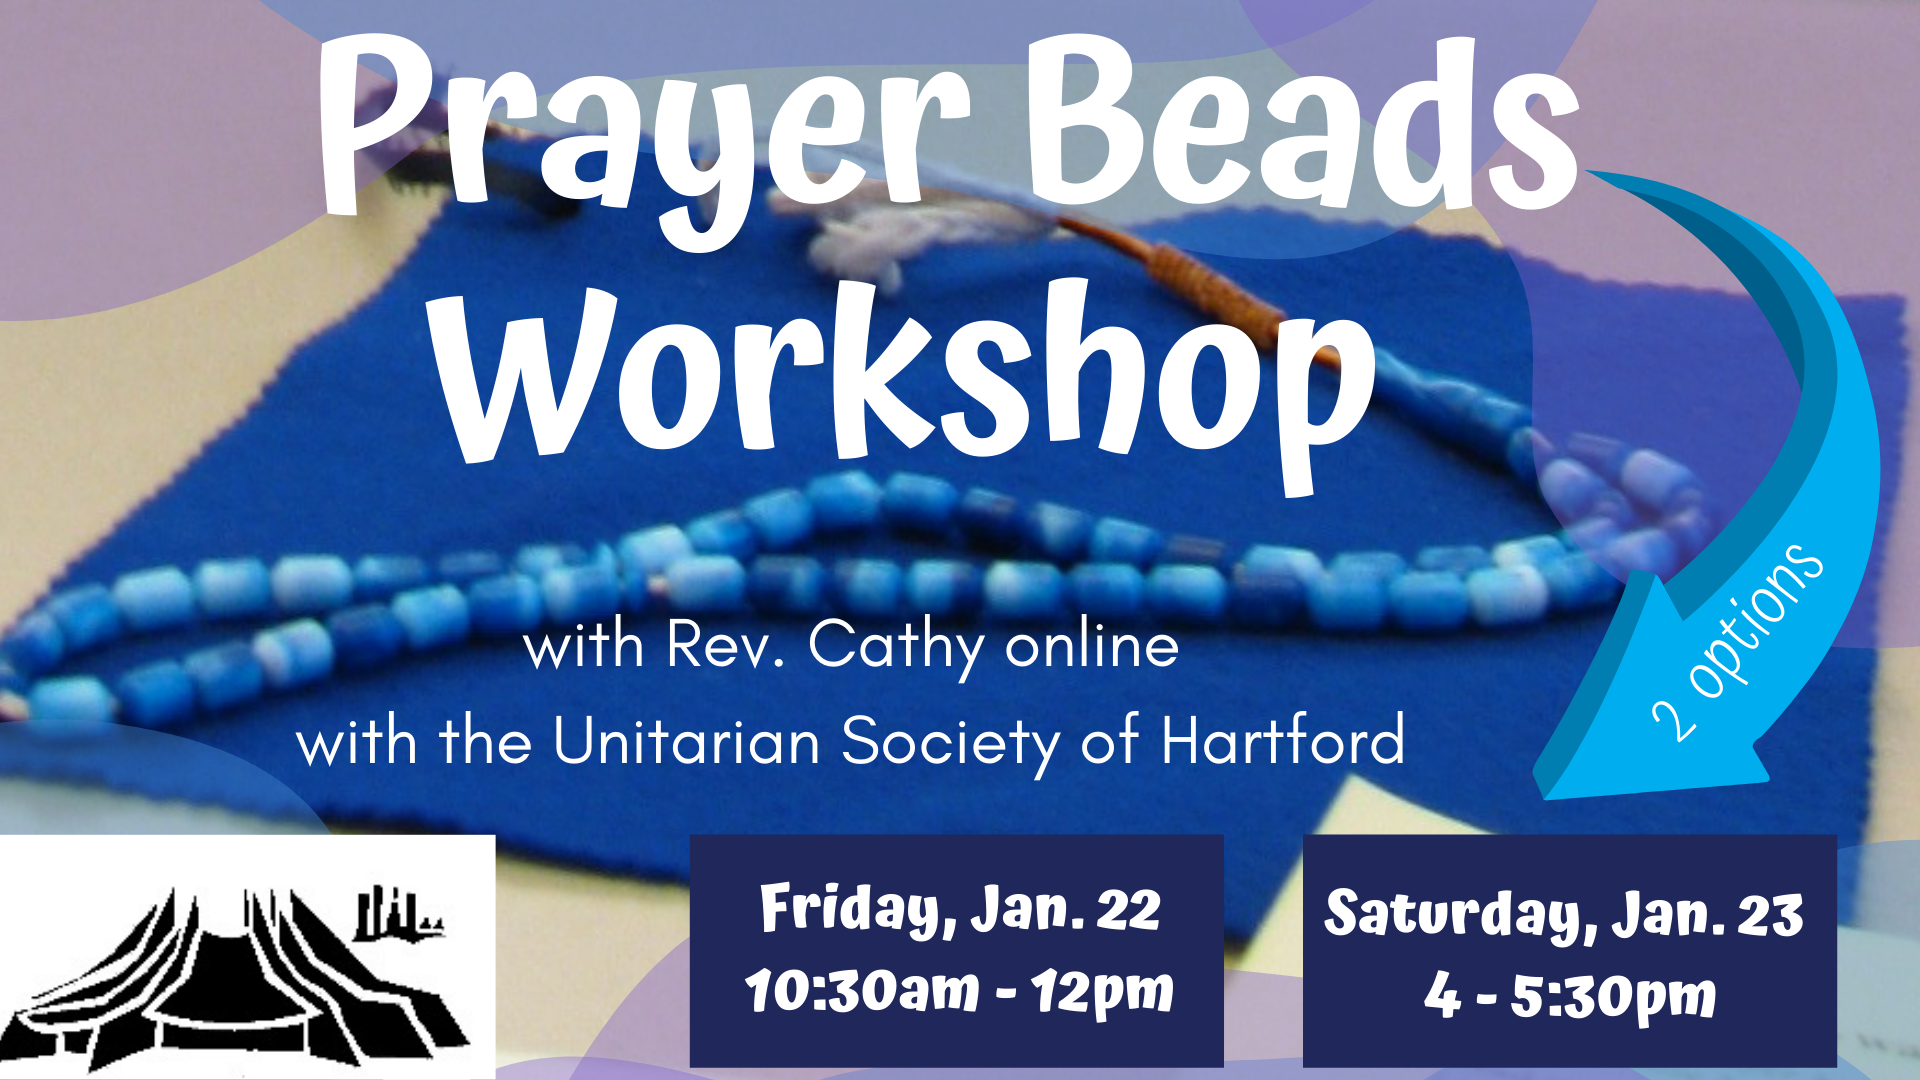 USH Prayer Beads Workshop info